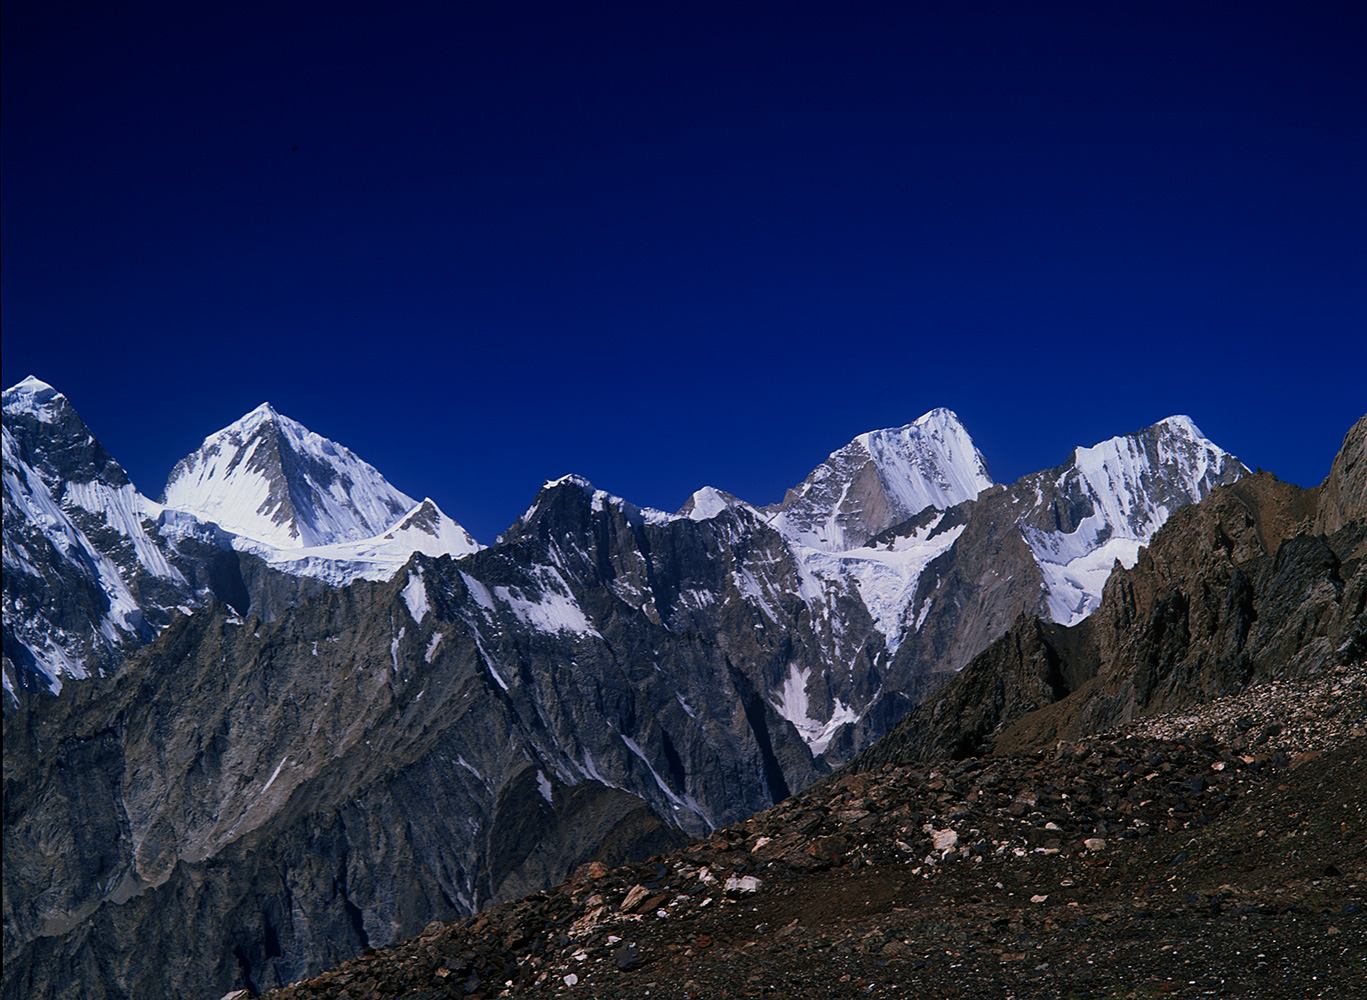 Seen from the high camp on the western side of the Chilinji Pass.Bronica ETRSi, Fuji RDP2